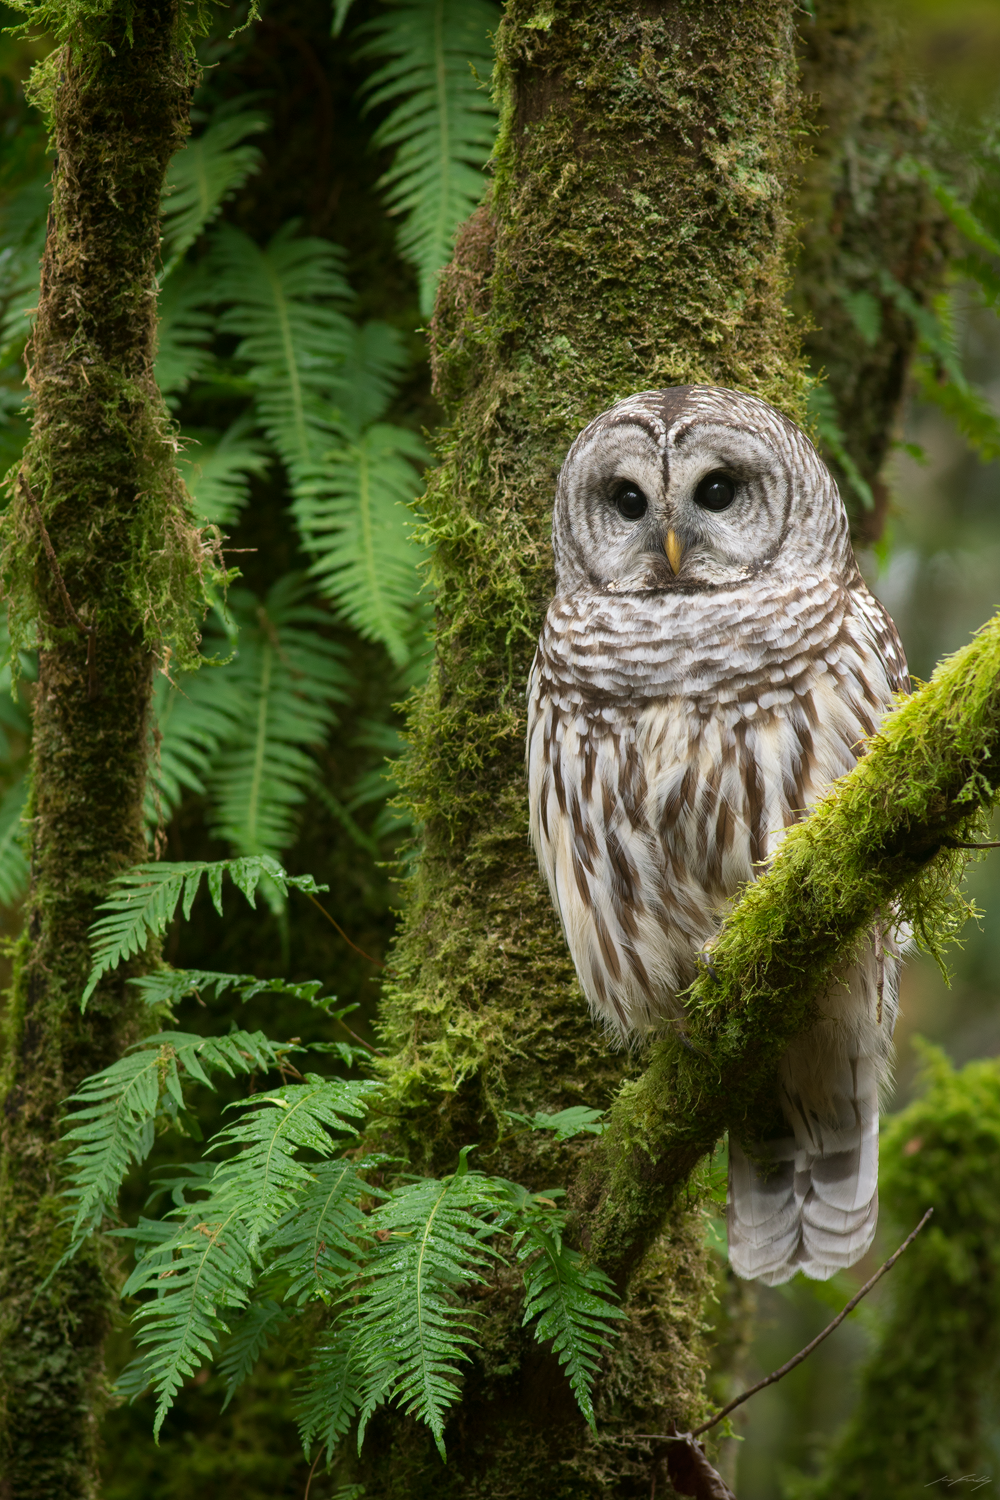 A Barred Owl perched amongst moss and licorice ferns in